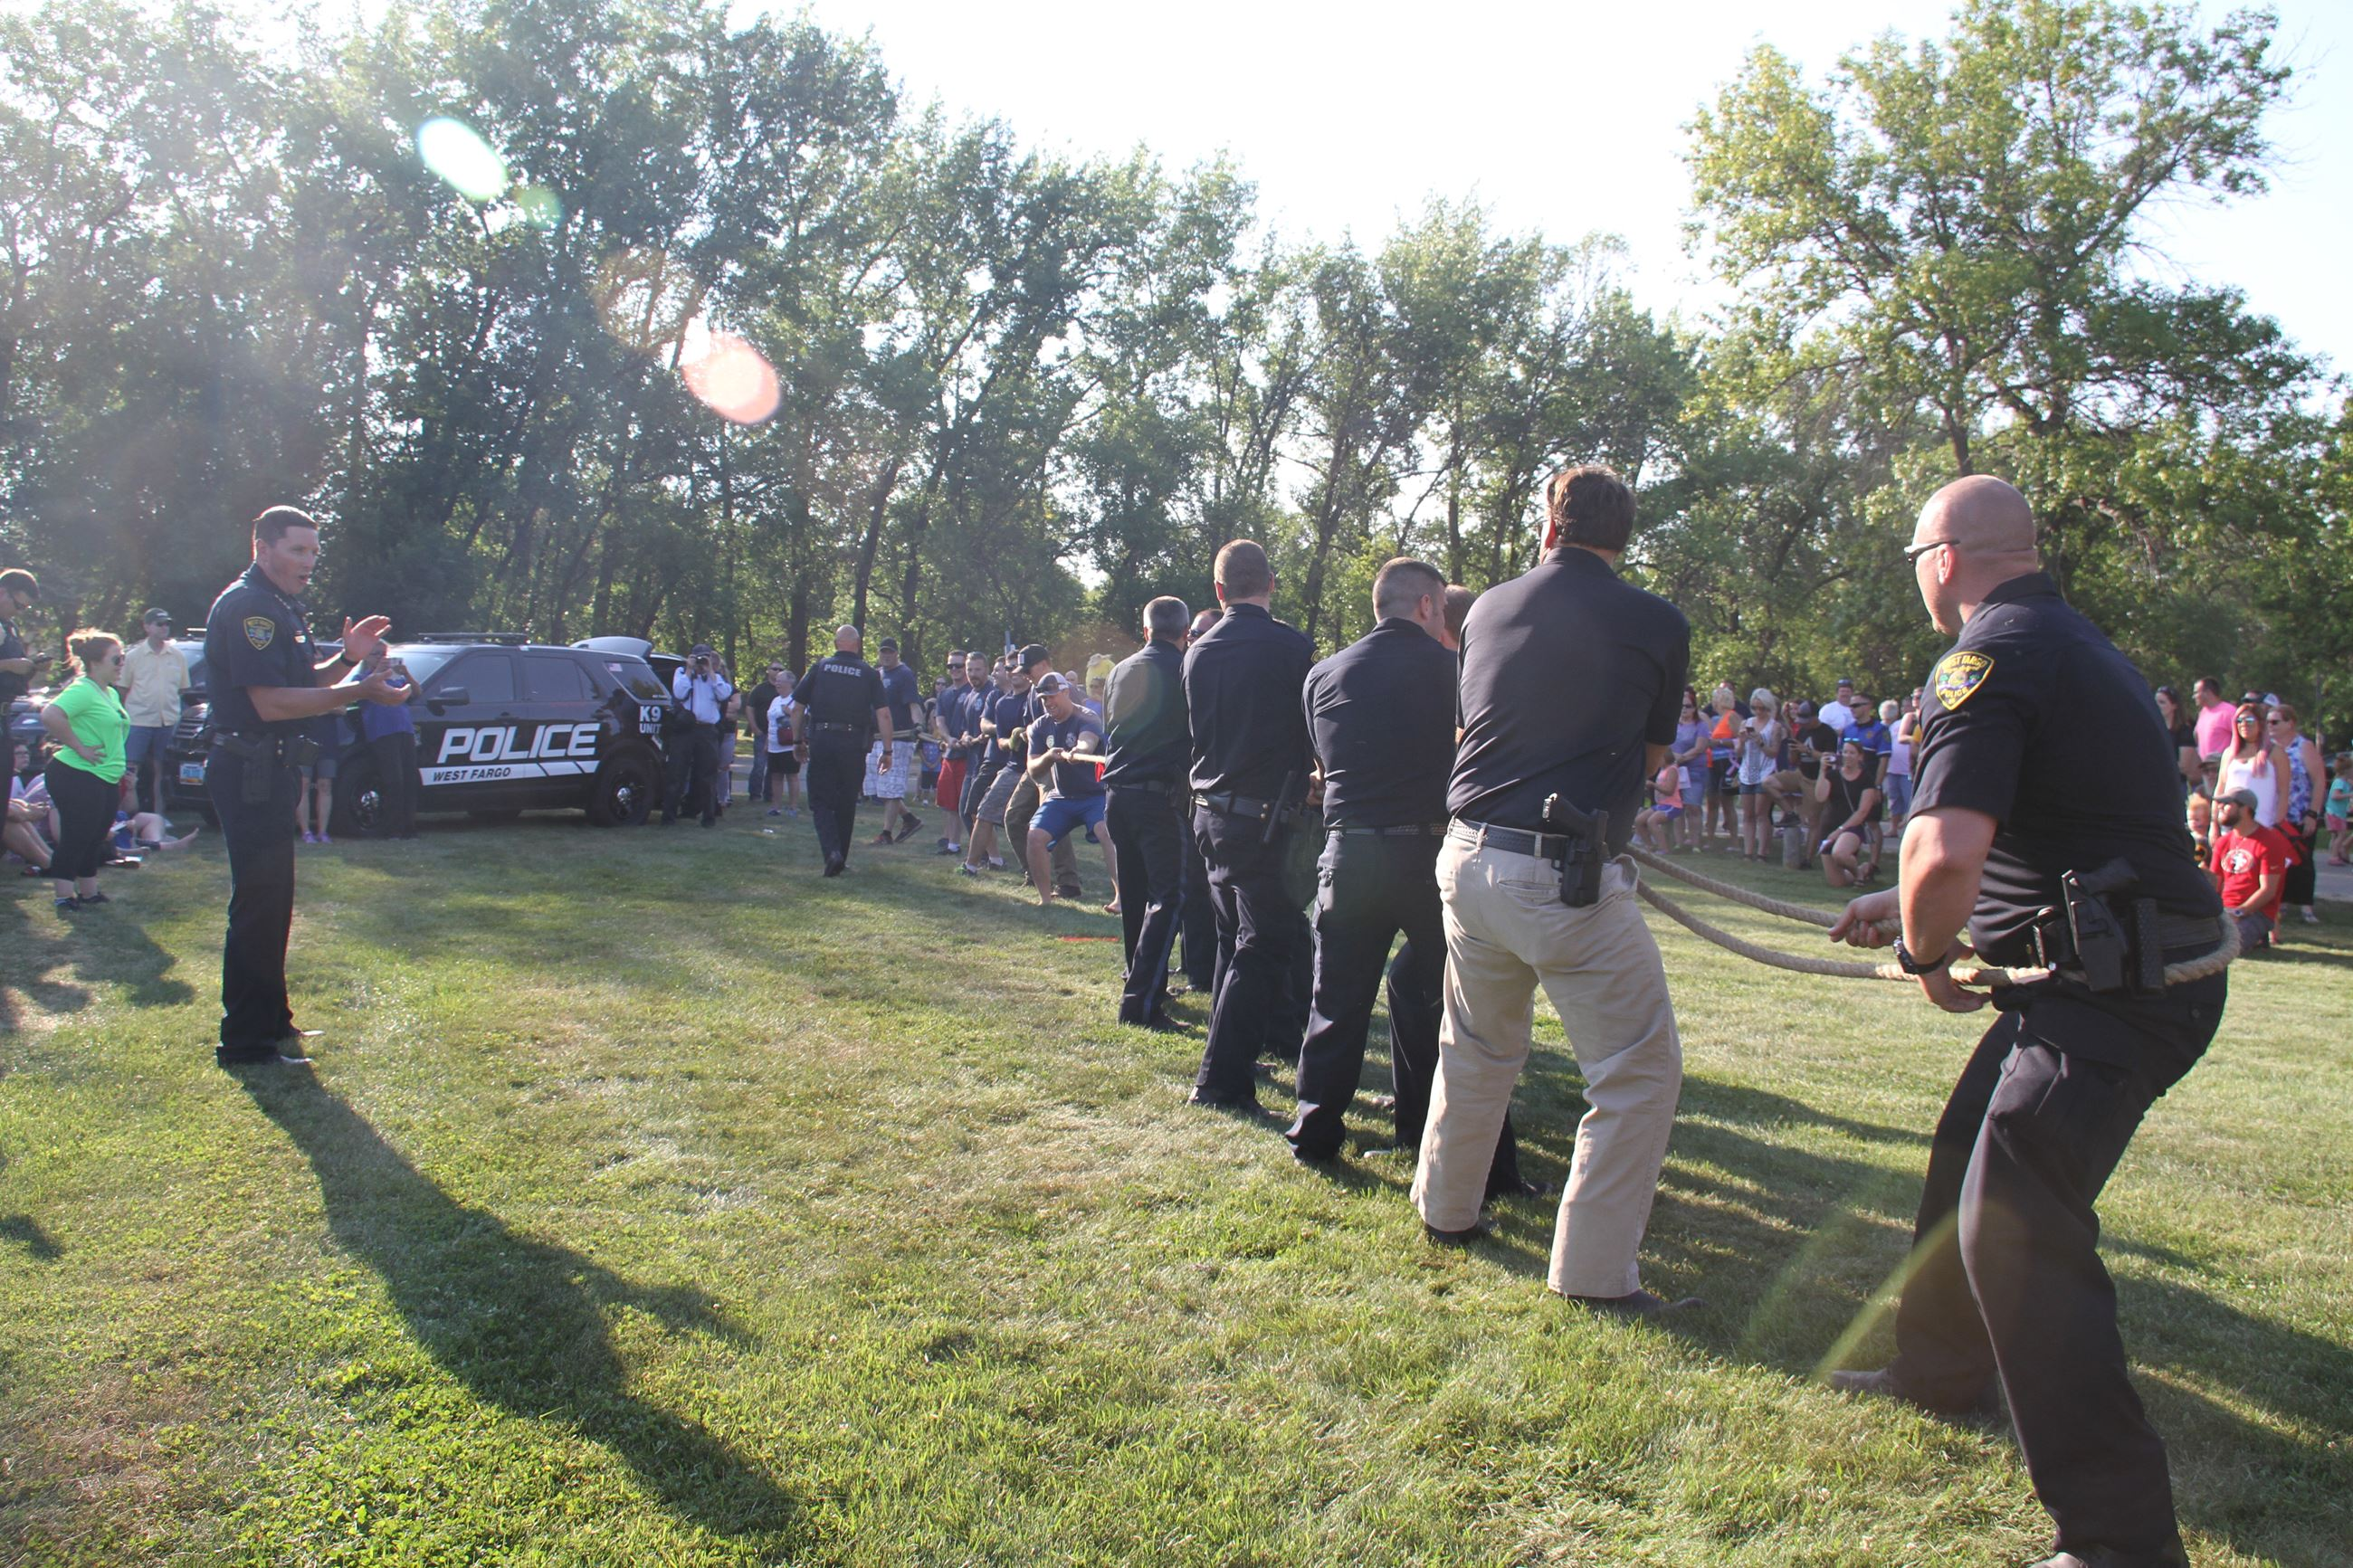 Chief Janke cheers on the West Fargo Police Department as they battle the West Fargo Fire Department in tug of war